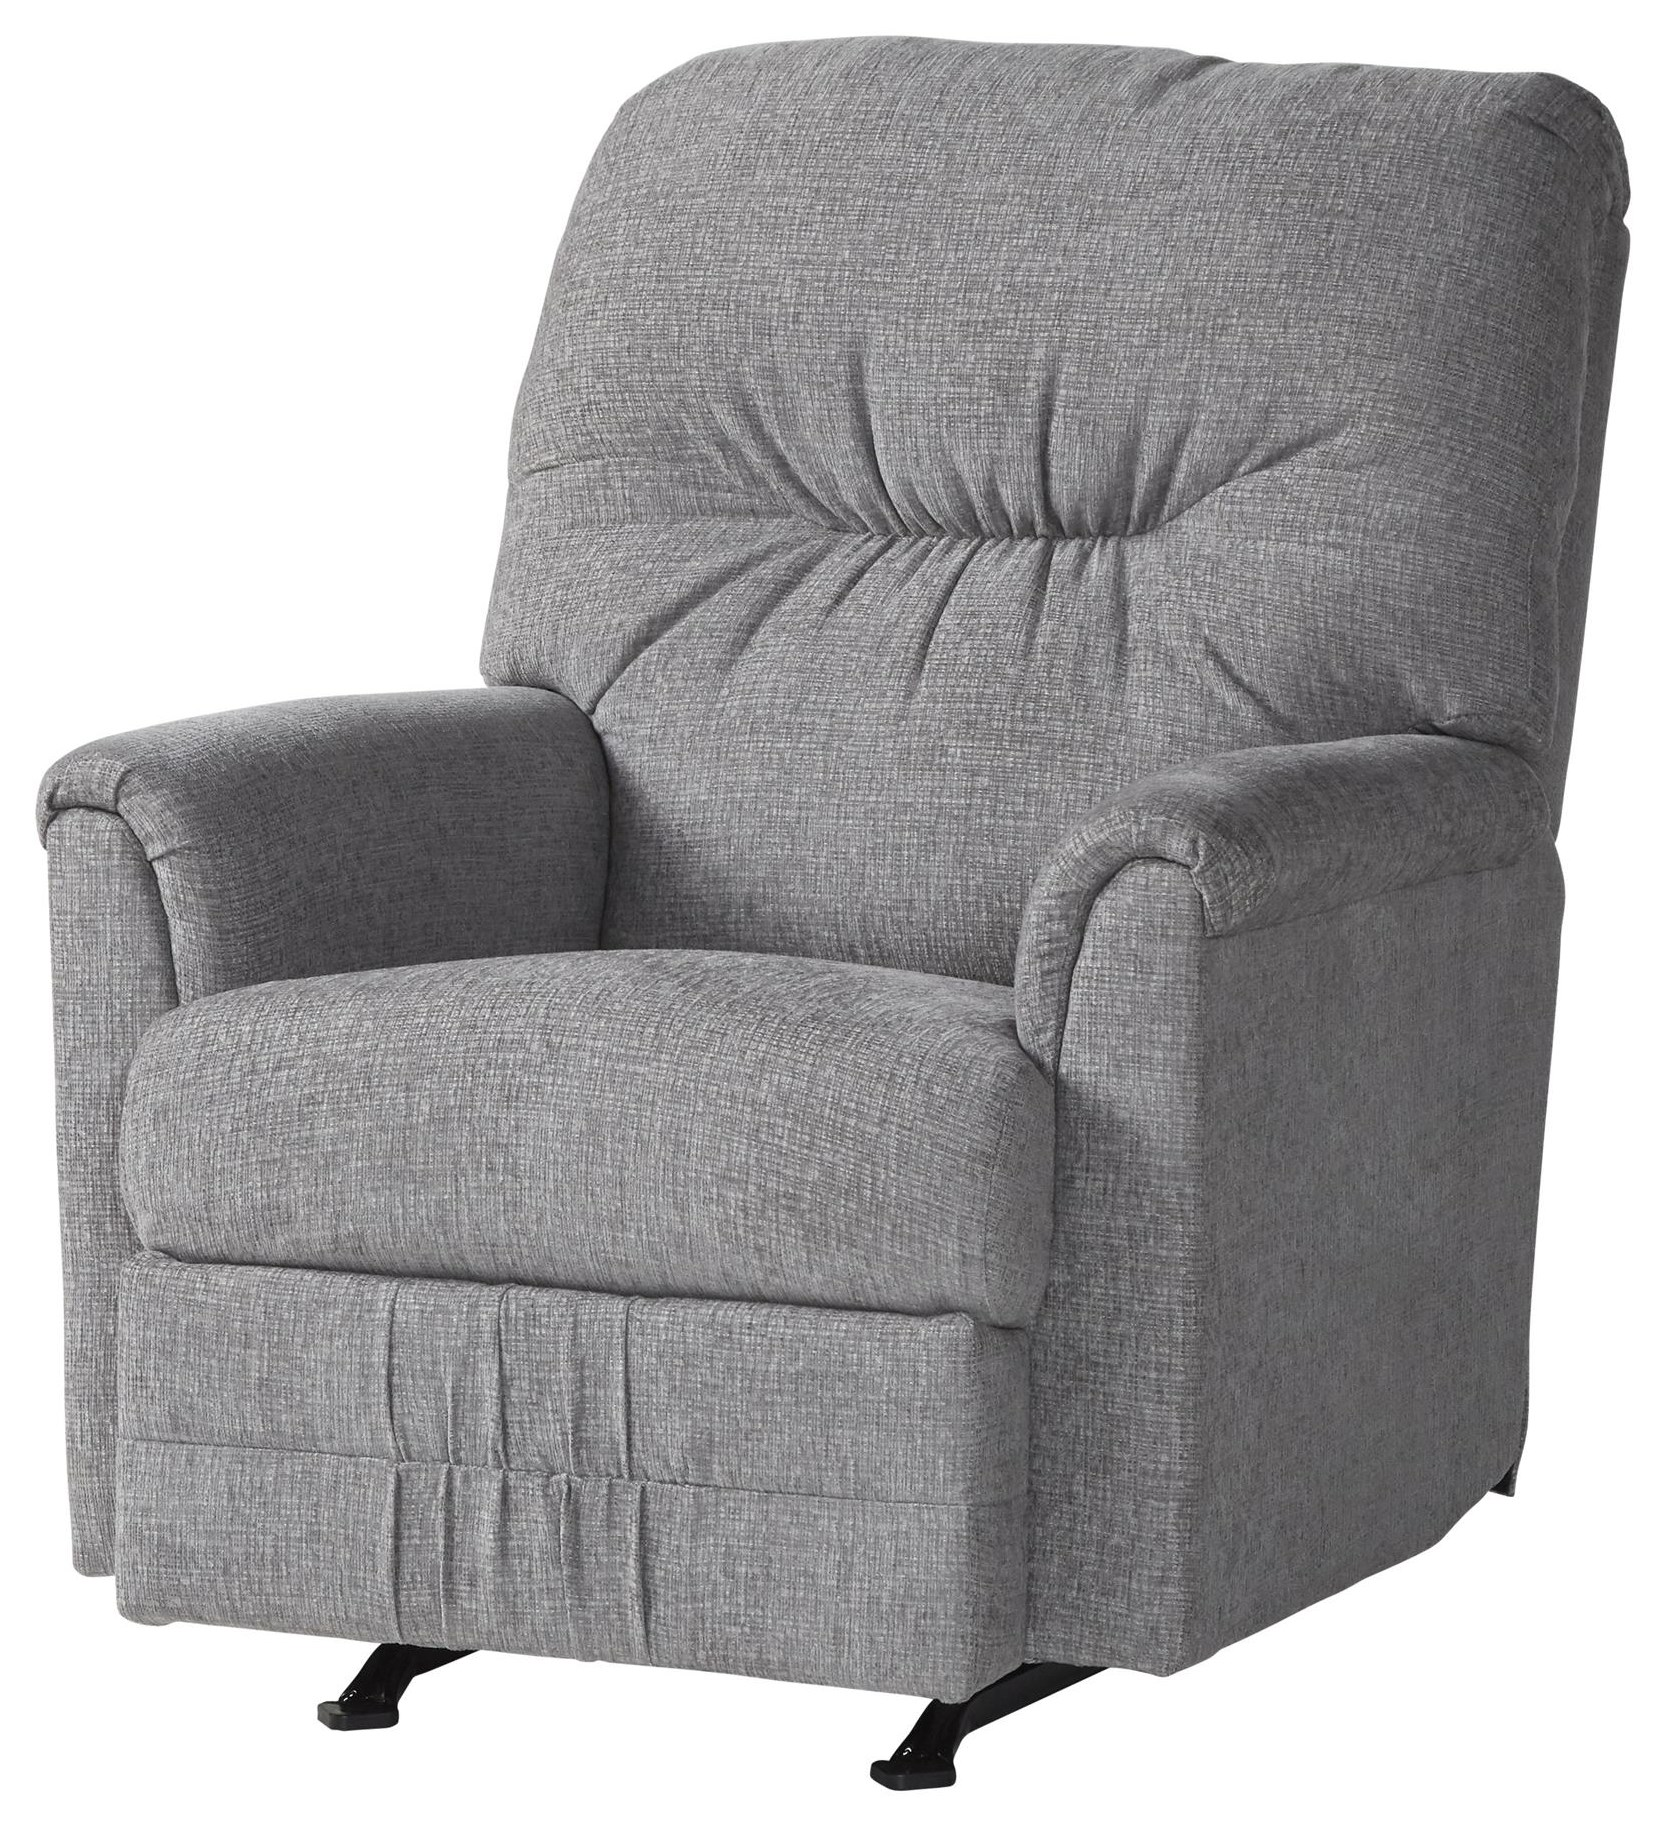 100 Recliner by Serta Upholstery by Hughes Furniture at VanDrie Home Furnishings